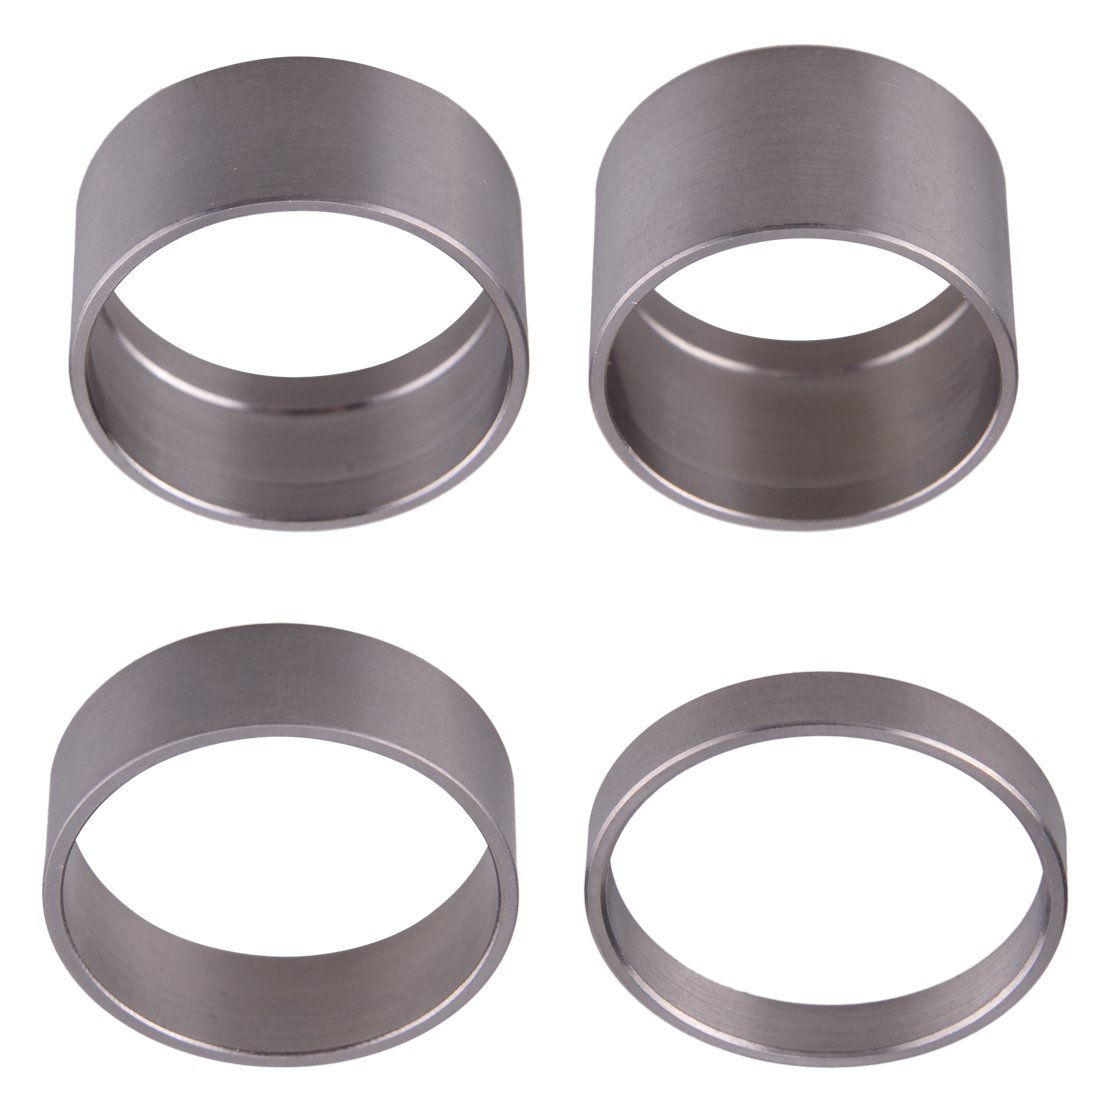 LETAOSK Titanium Alloy Spacer Mountain Bike Headset Washer Front Stem 5/10/15/20mm 4pcs